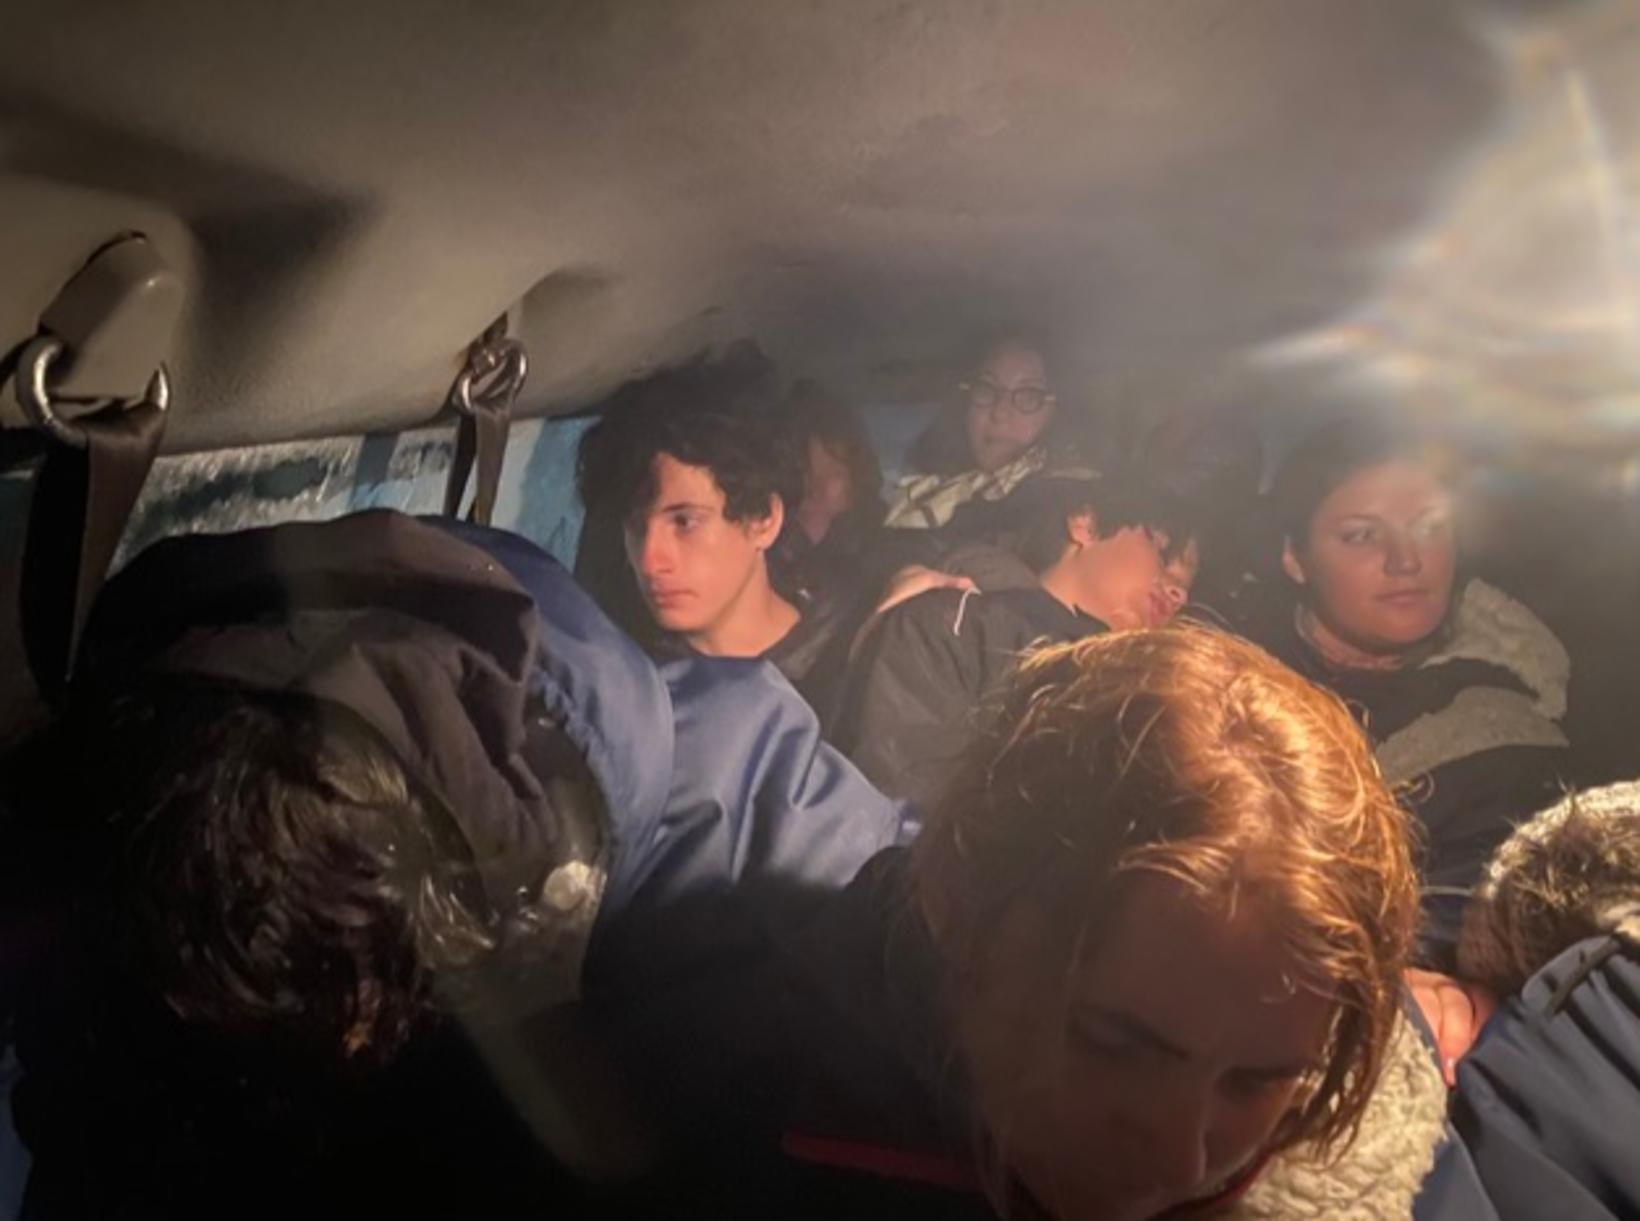 Waiting for help inside the crammed vehicle.